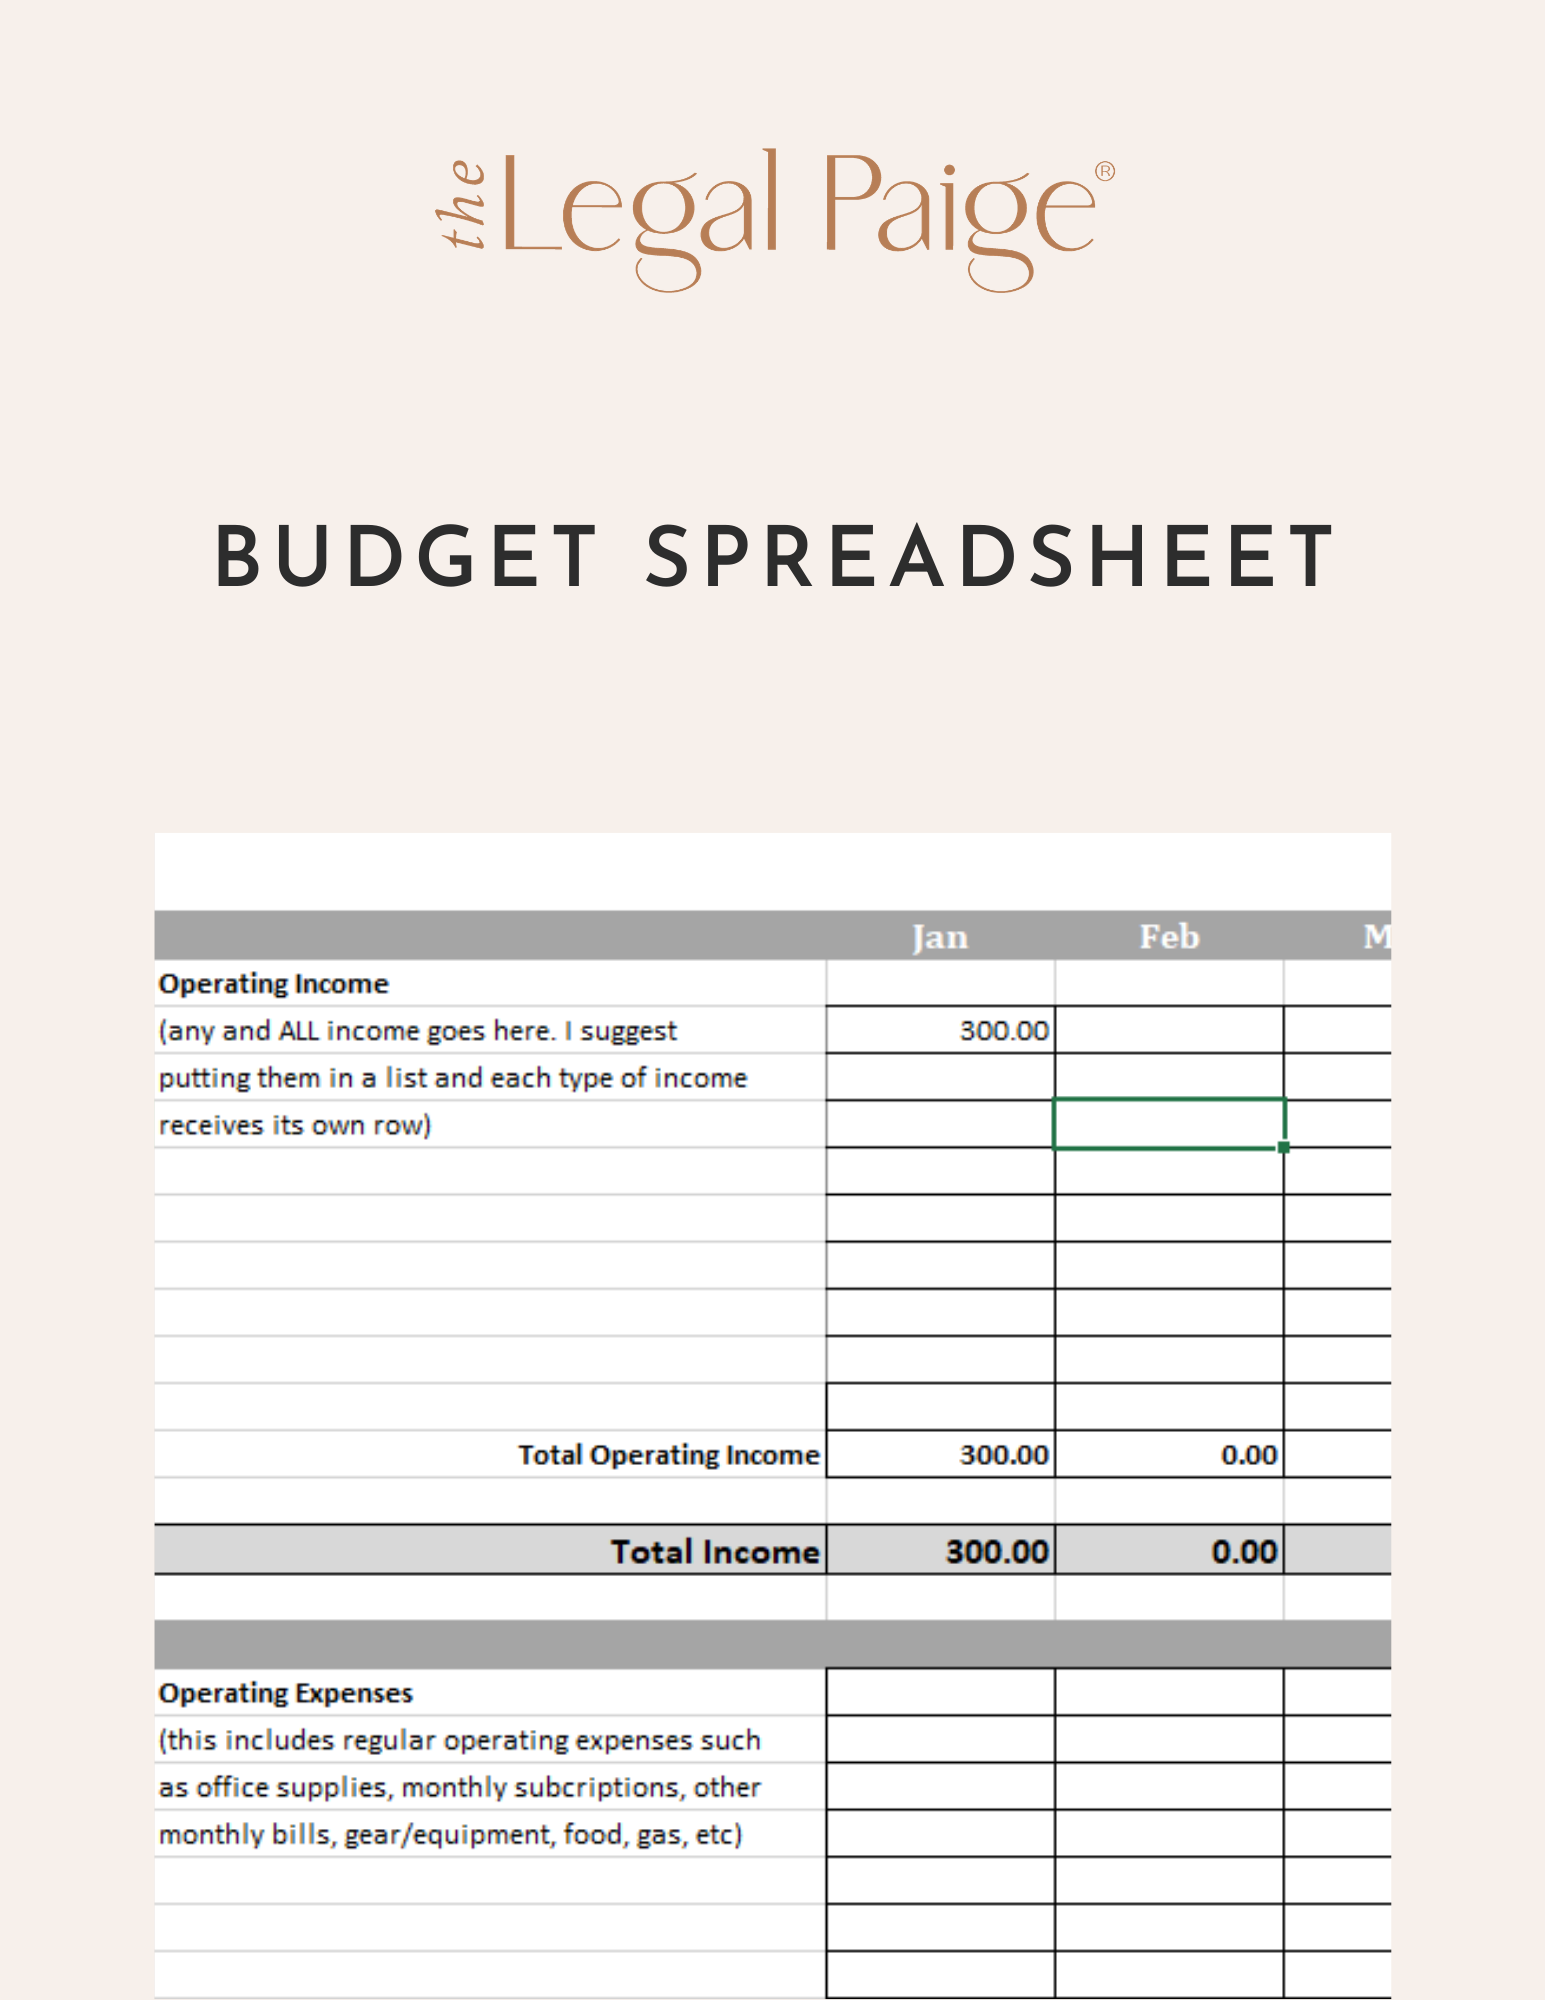 The Legal Paige - Free Download Budget Spreadsheet